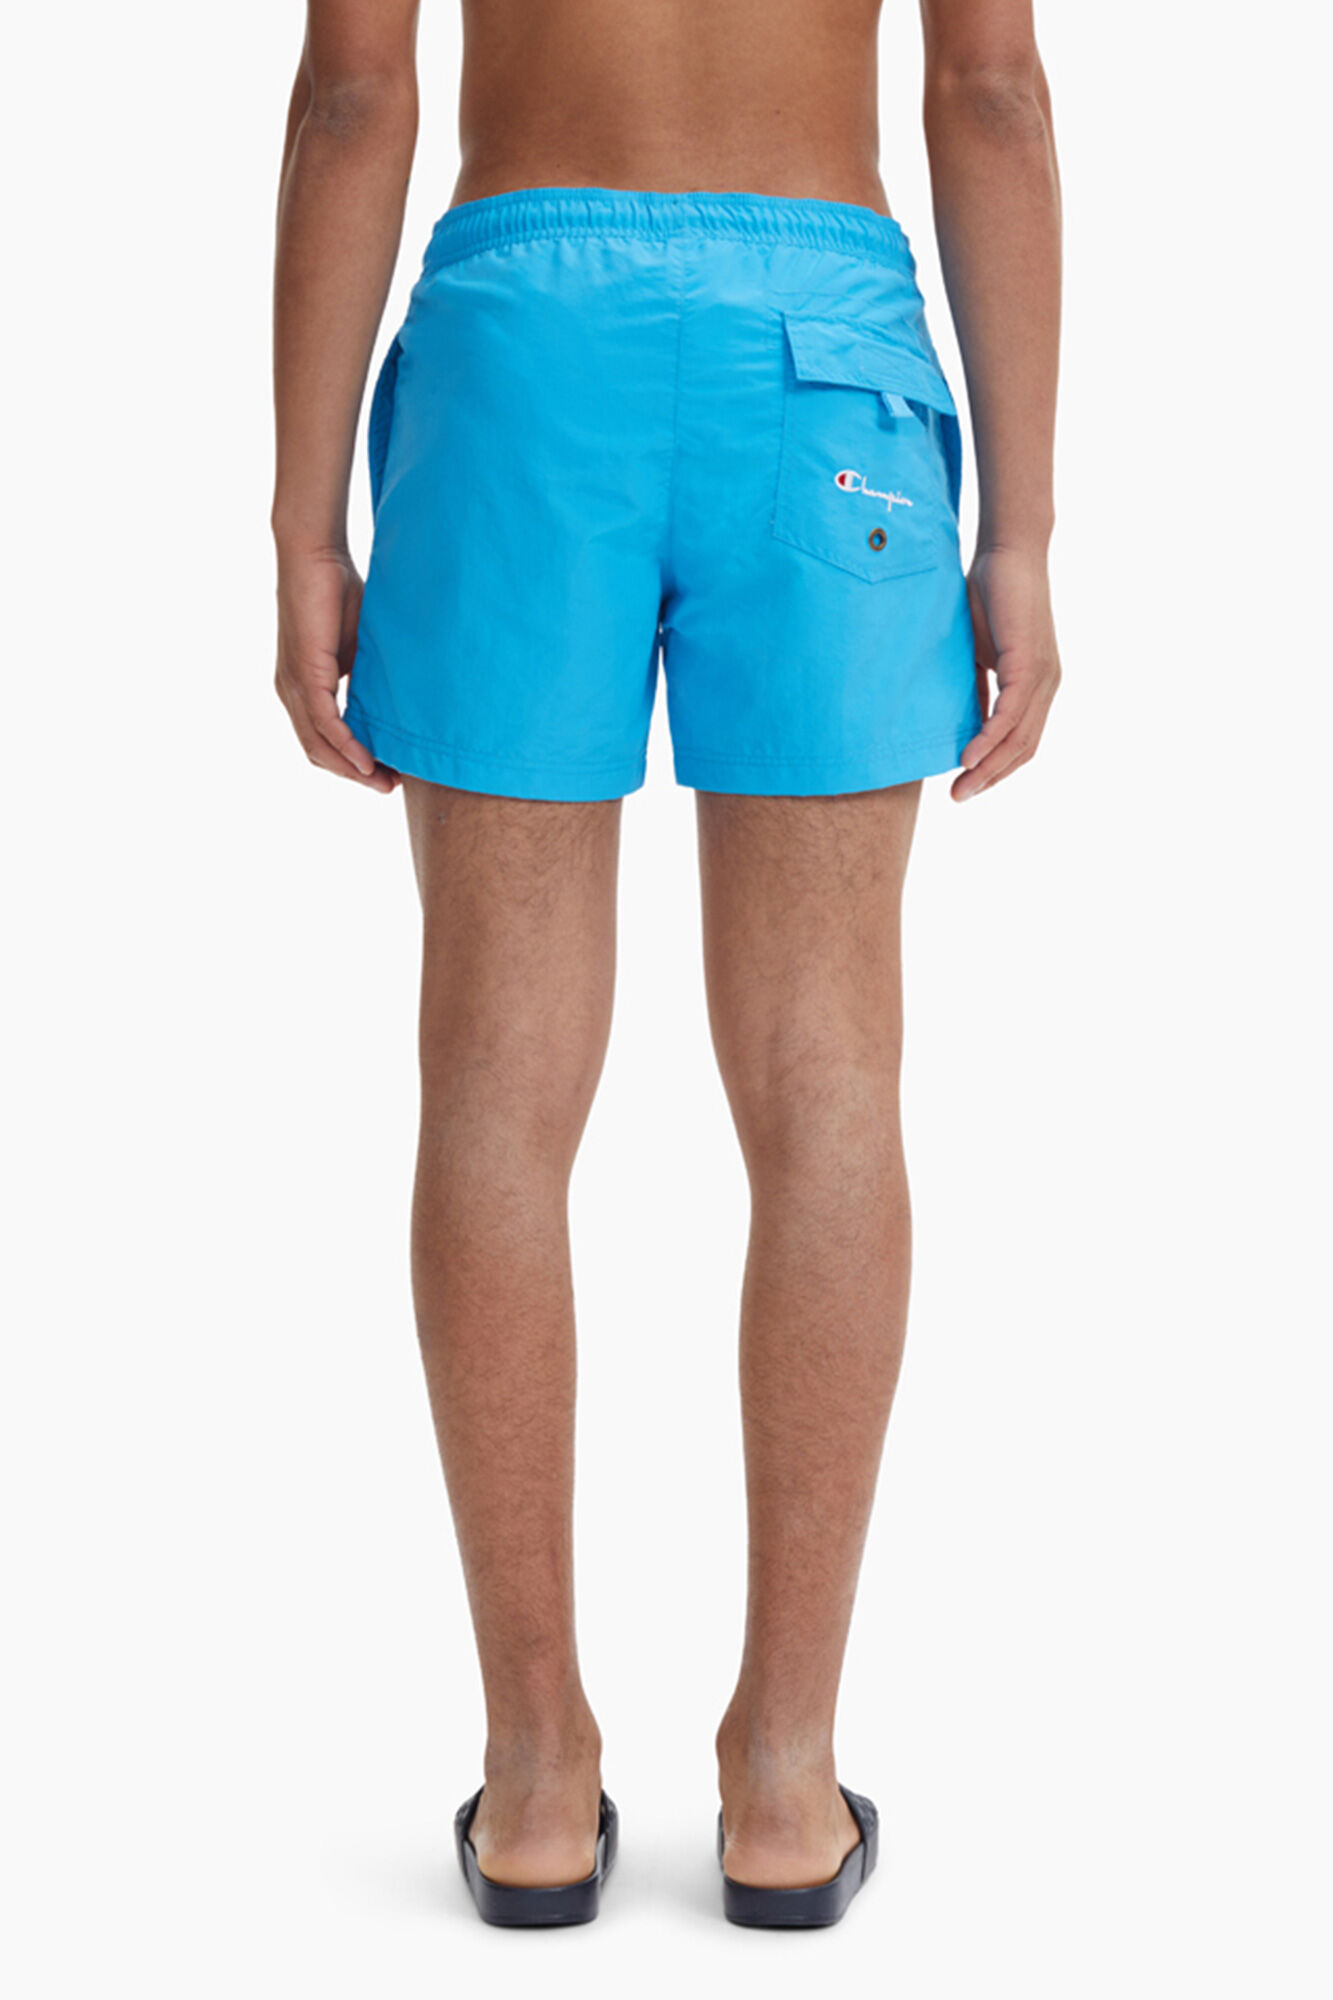 Beachshorts 213090, MUB/AUG